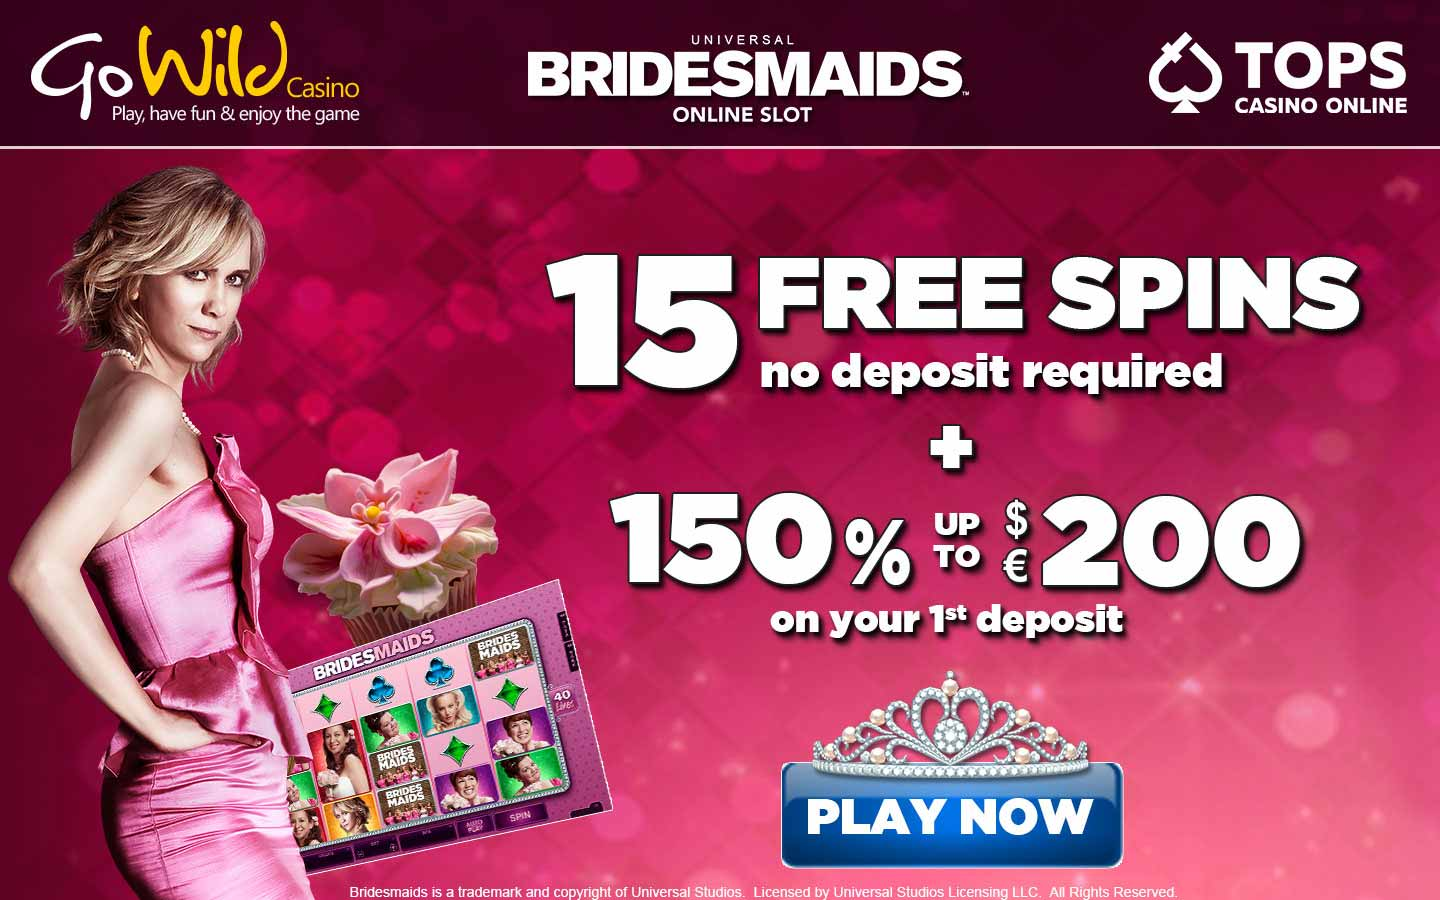 GoWild casino exclusive 15 free spins